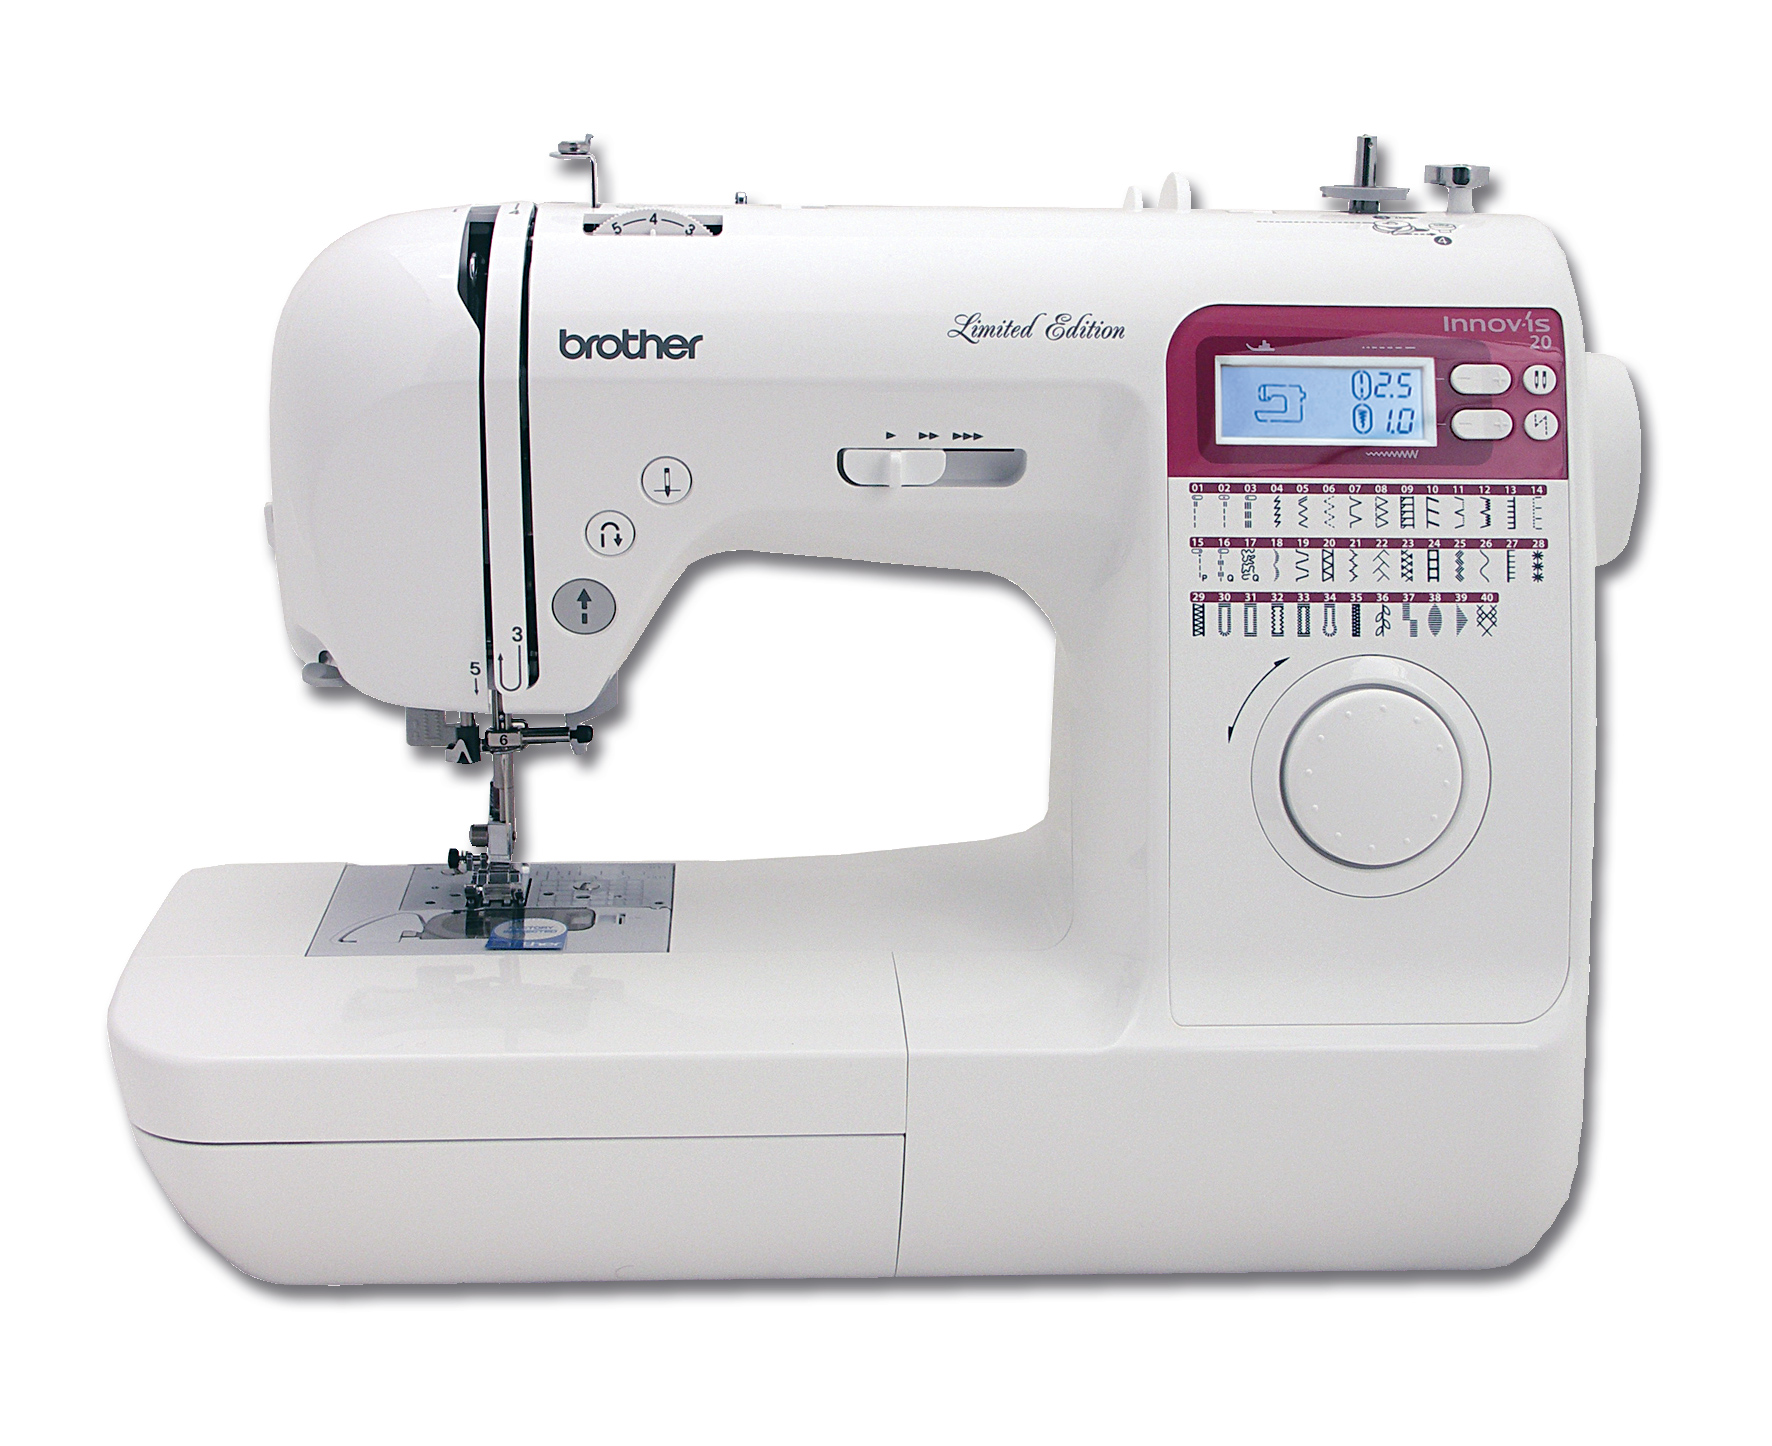 brother innov is 20le sewing machine hobkirk sewing machines ltd. Black Bedroom Furniture Sets. Home Design Ideas